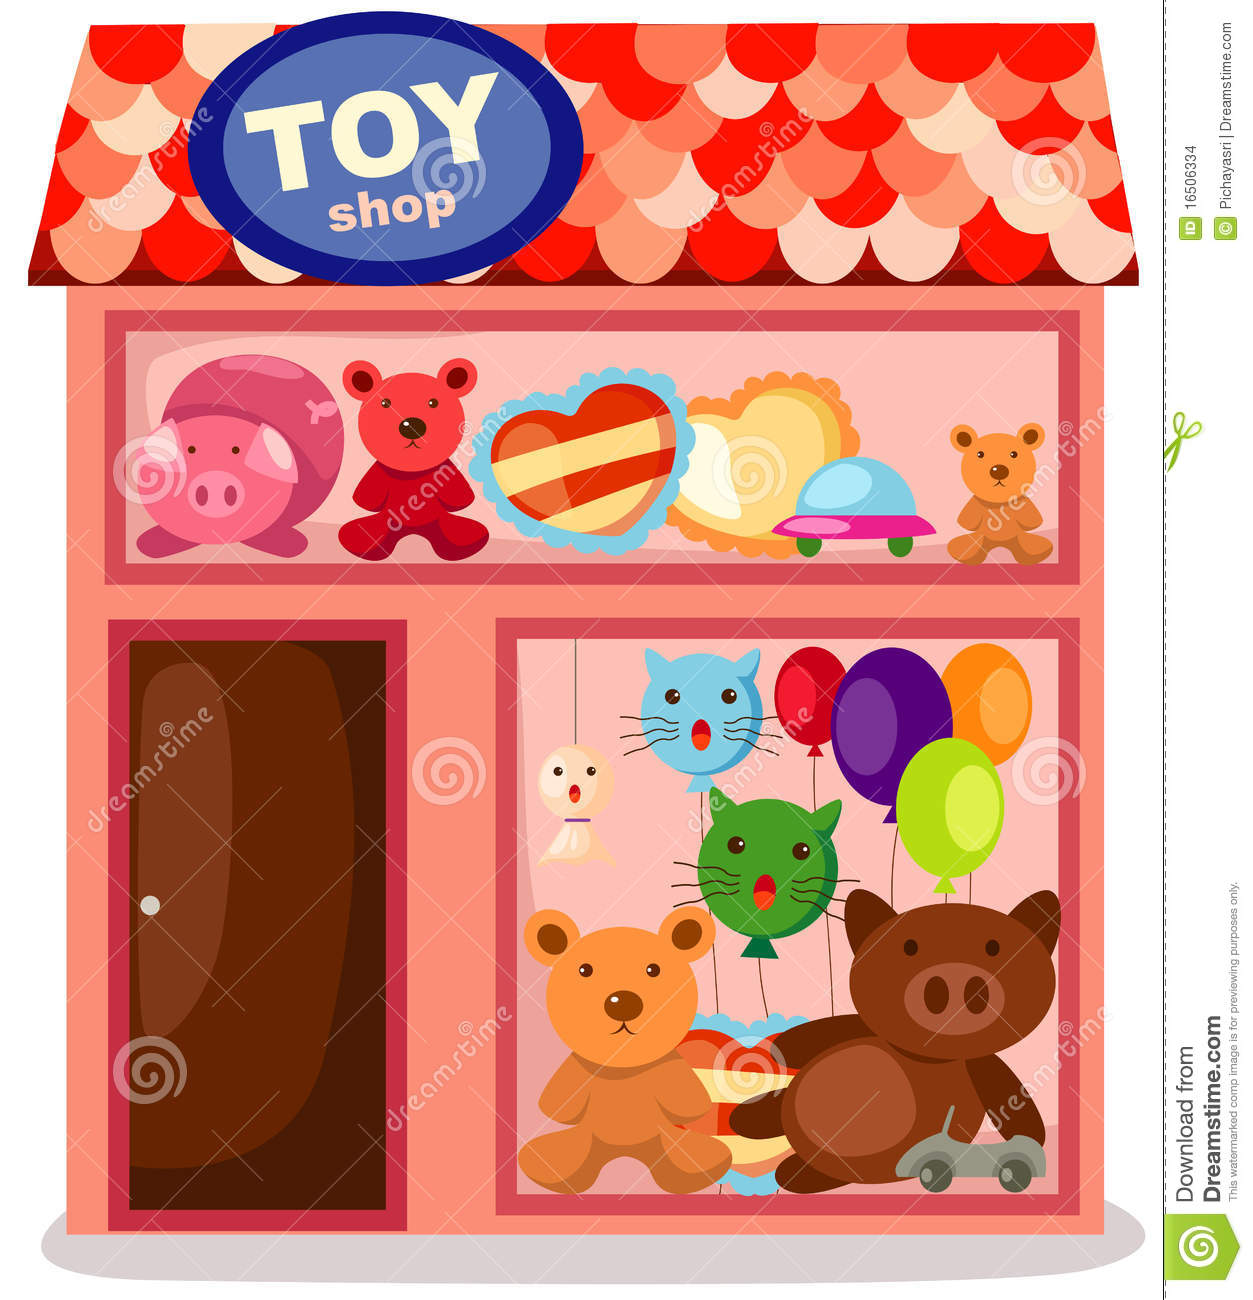 Toy store clipart 7 » Clipart Station.